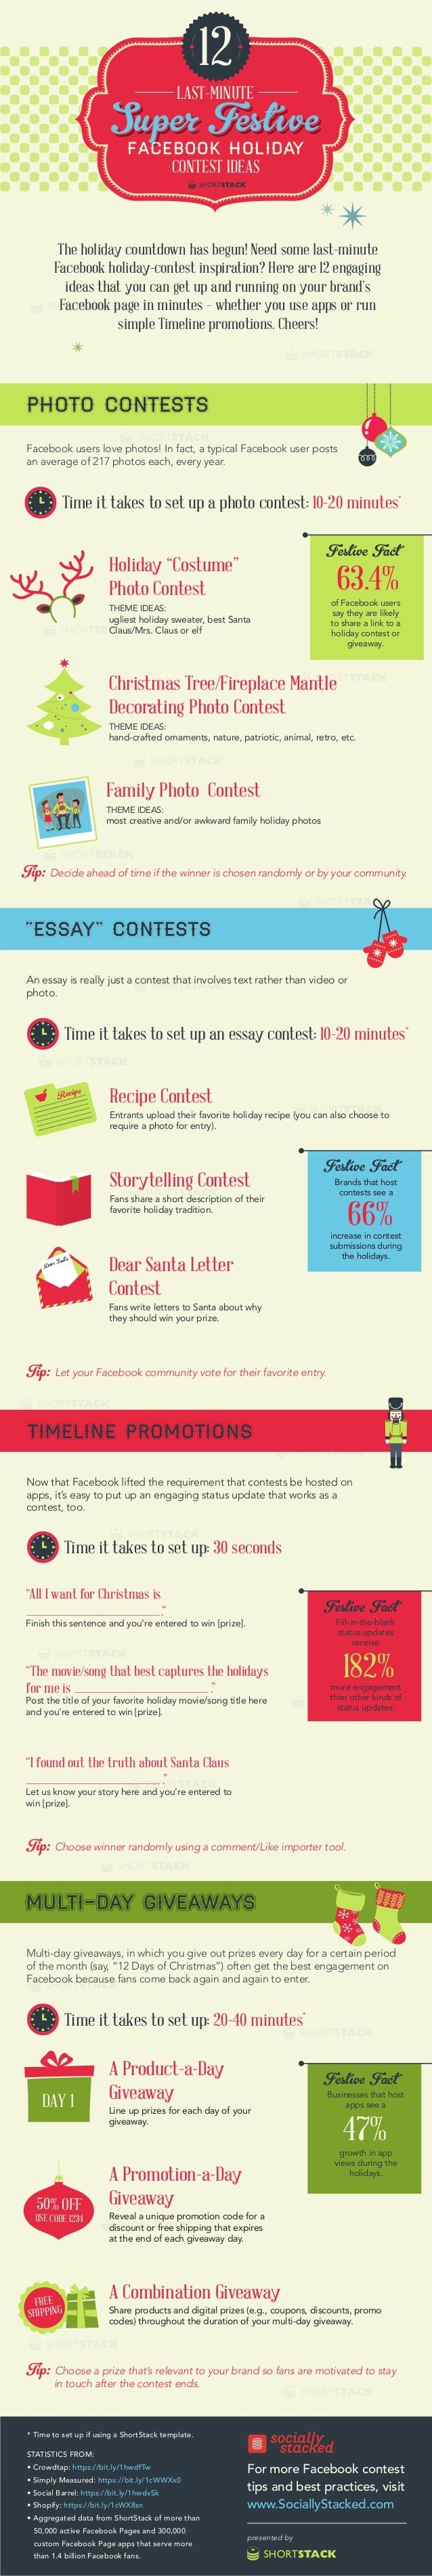 12 Holiday Facebook Contest Ideas You Can Implement Today